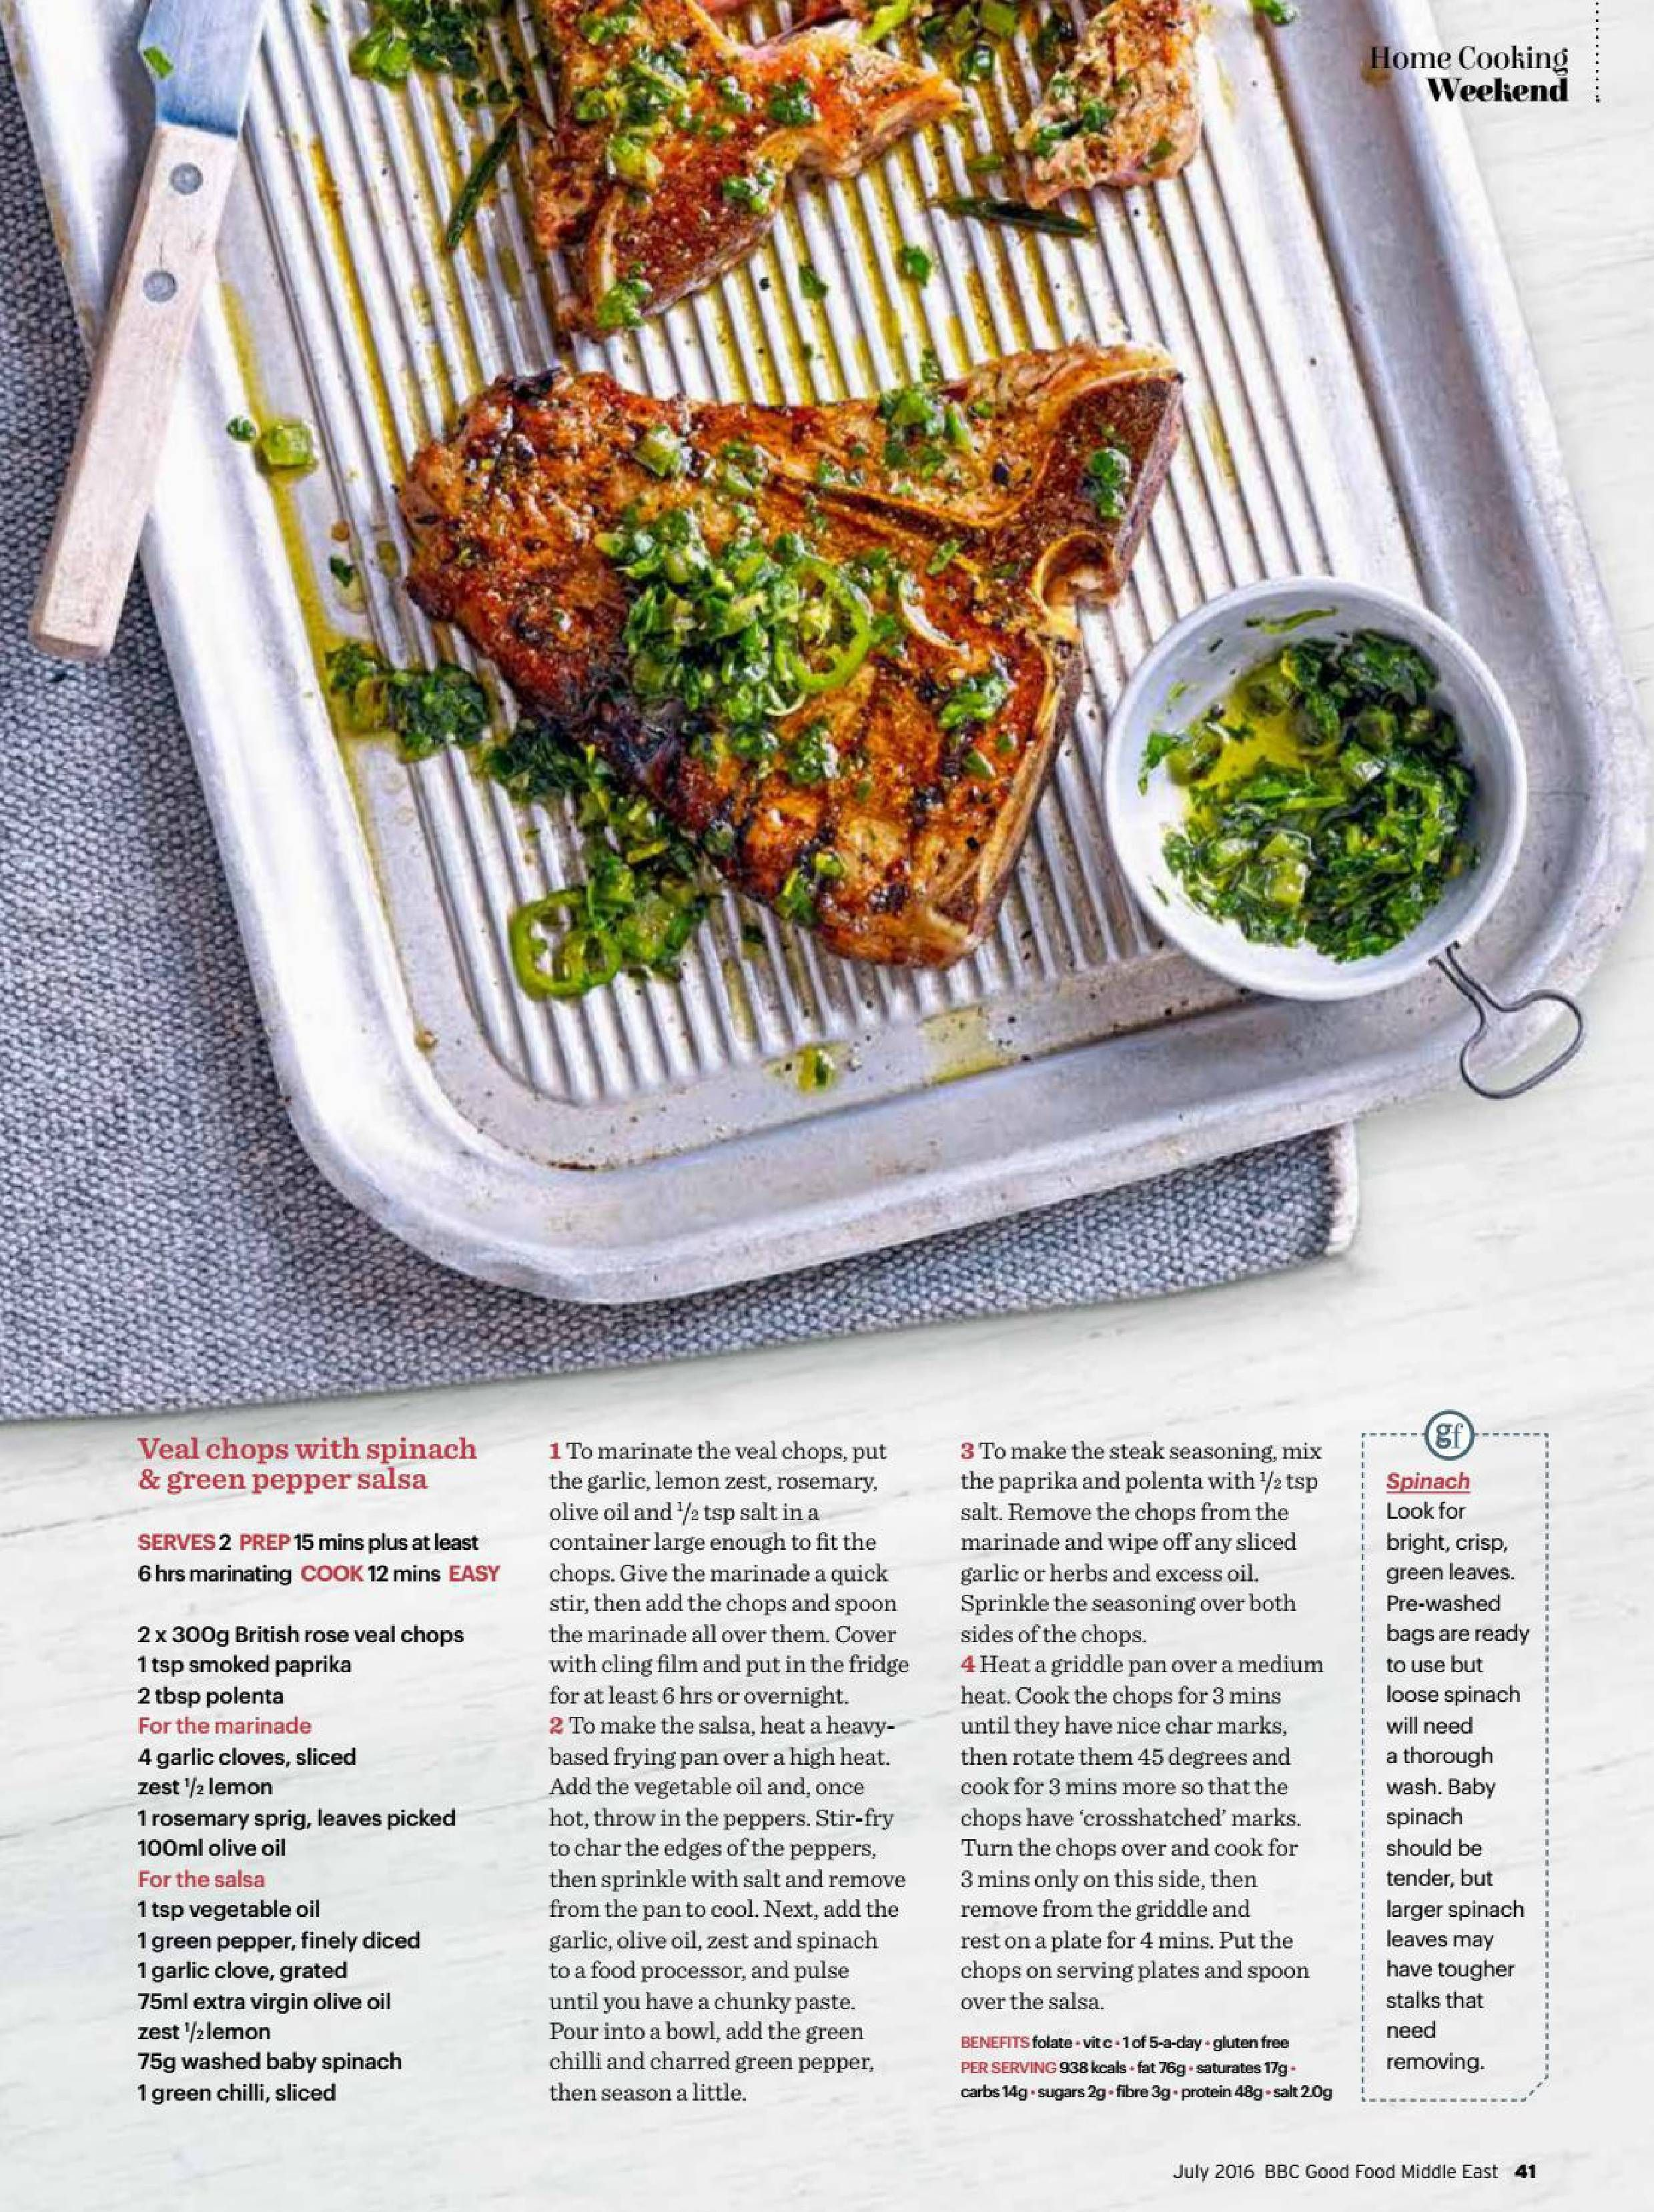 Veal chops with spinach and green pepper salsa recipe bbc good veal chops with spinach and green pepper salsa recipe forumfinder Gallery